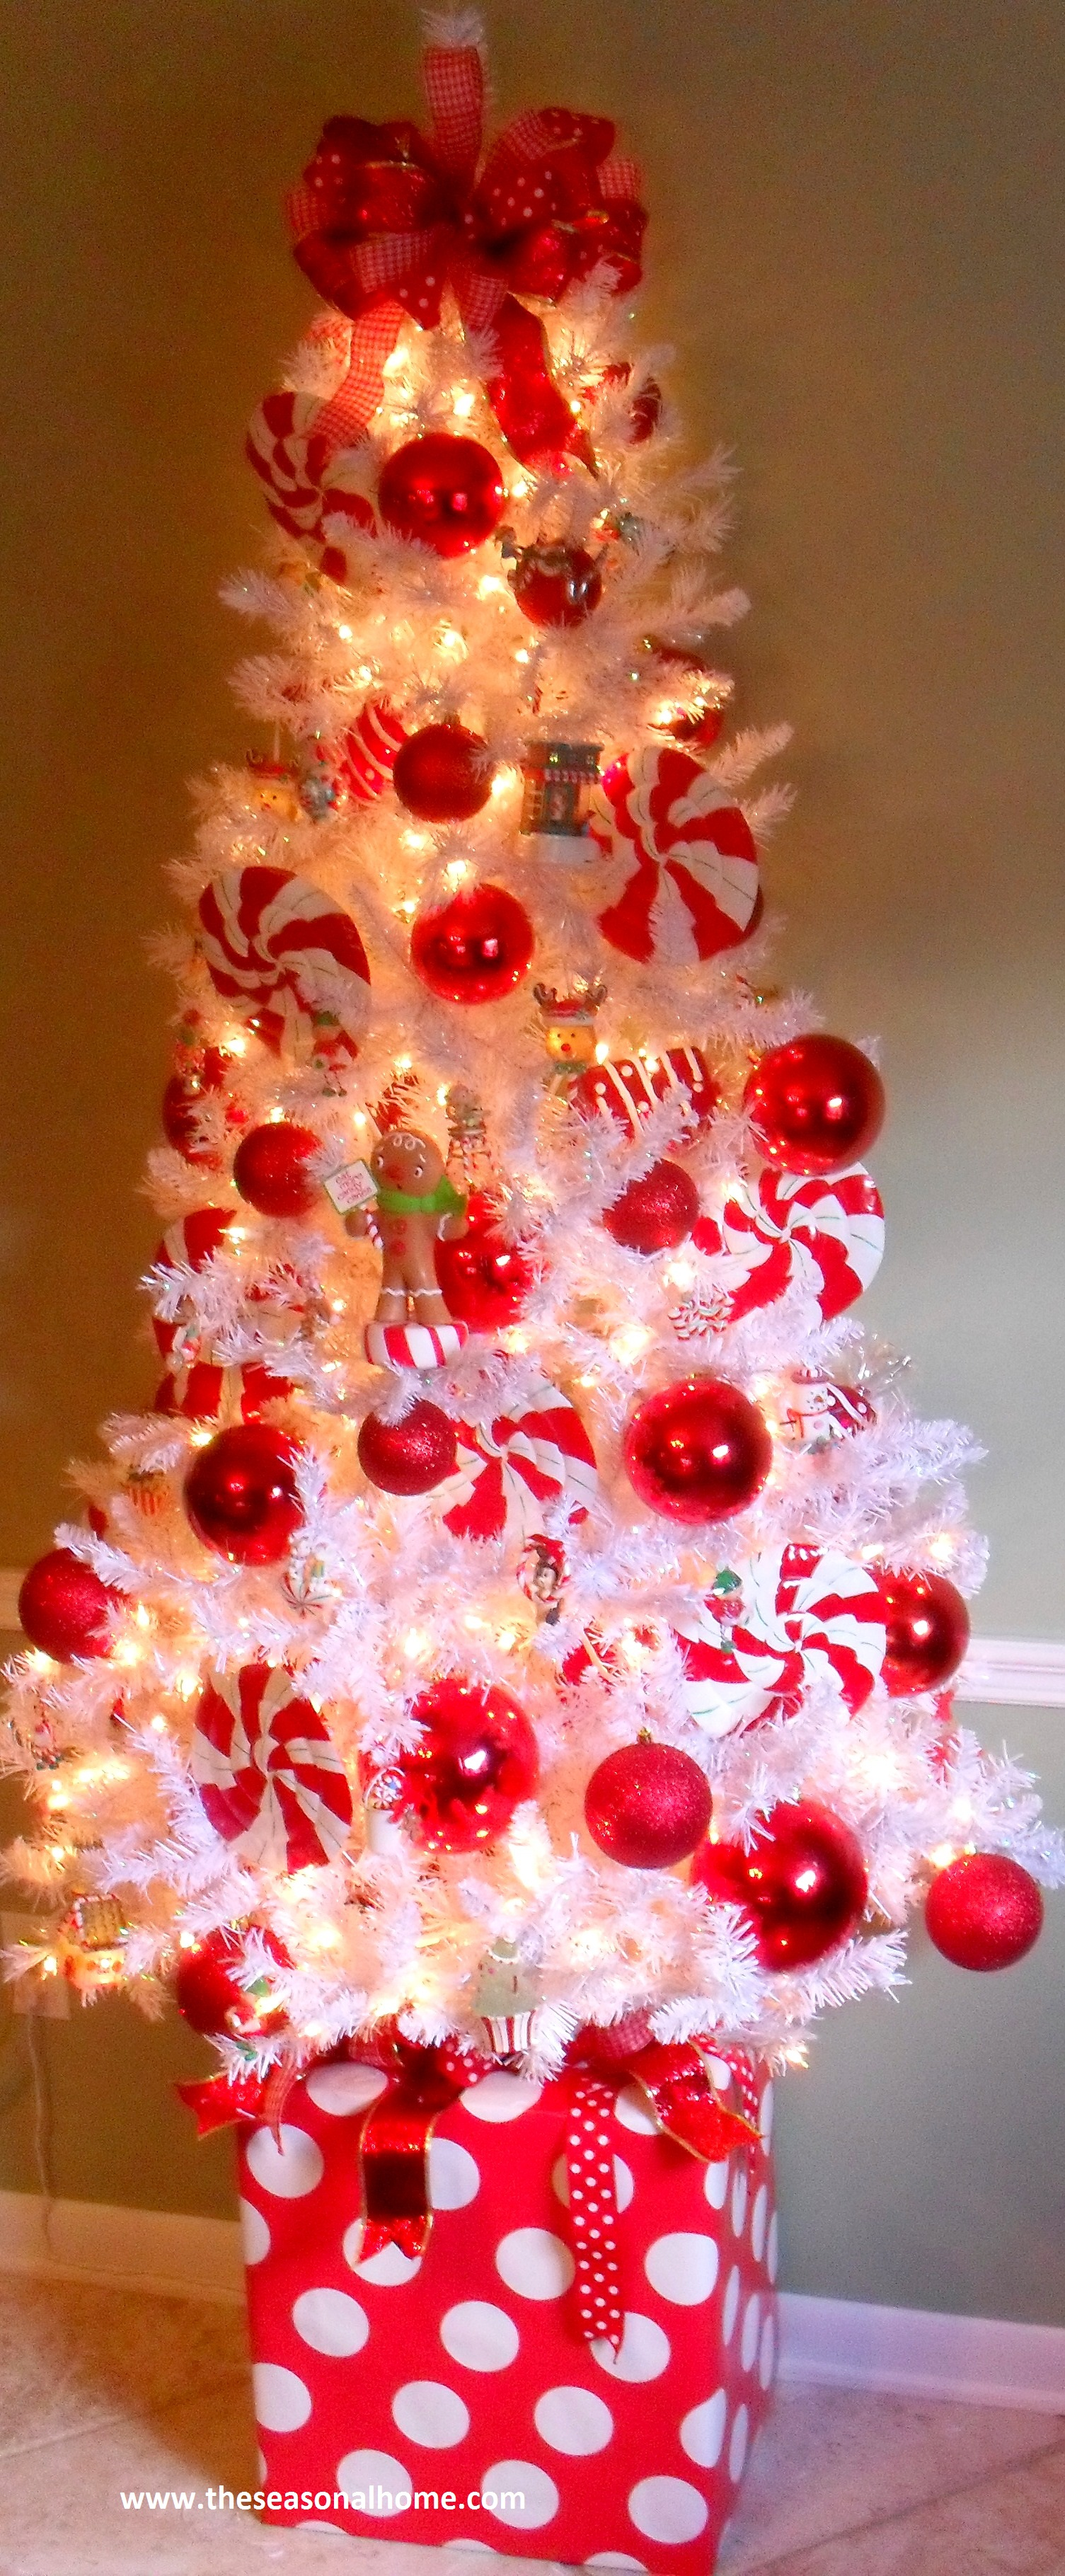 Cool Christmas Gifts For Moms: Unique Christmas Tree Skirt Ideas « The Seasonal Home